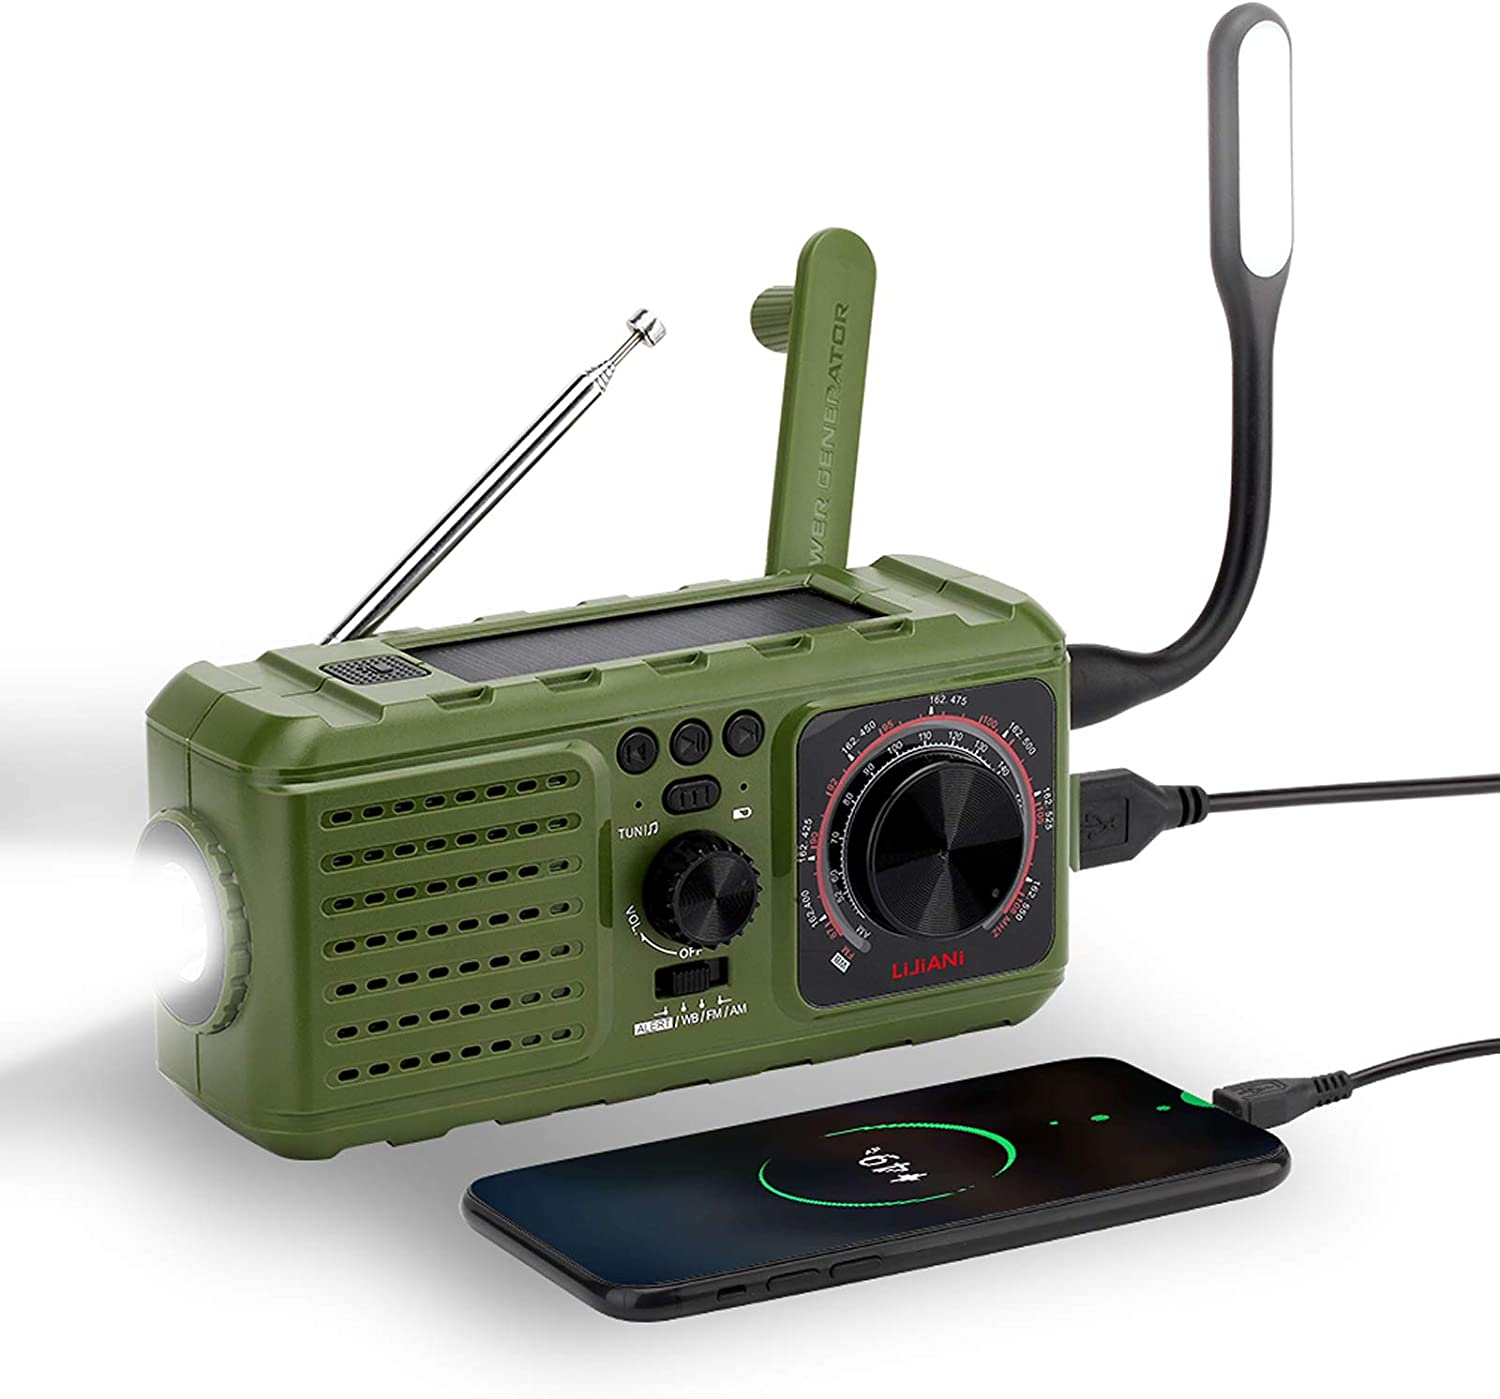 Emergency NOAA Radio Weather auto Alert and Portable AM FM MP3 Player,Solar Hand Crank Operated with 2200MAH Battery,USB Cell Phone Charger,Flashlight,Reading Lamp,SOS Alarm